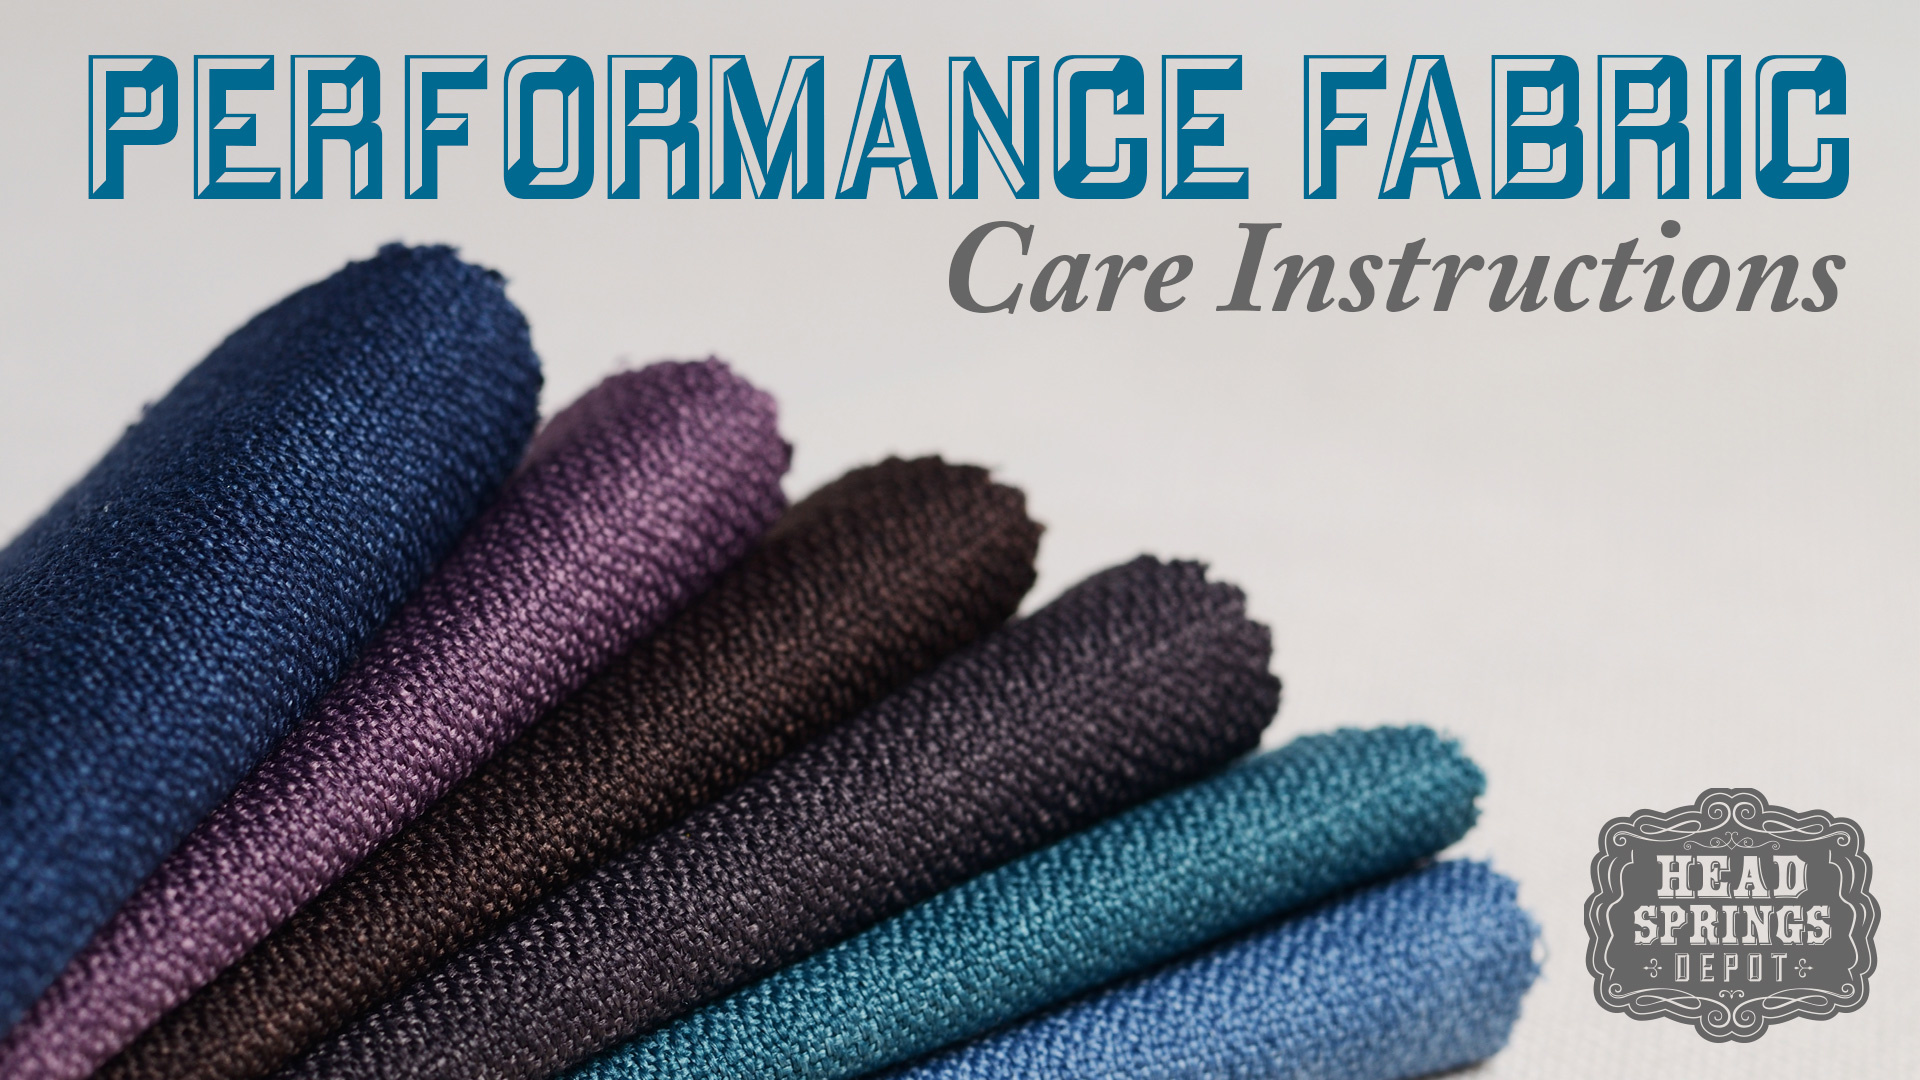 Top 4 Performance Fabrics for Upholstered Furniture